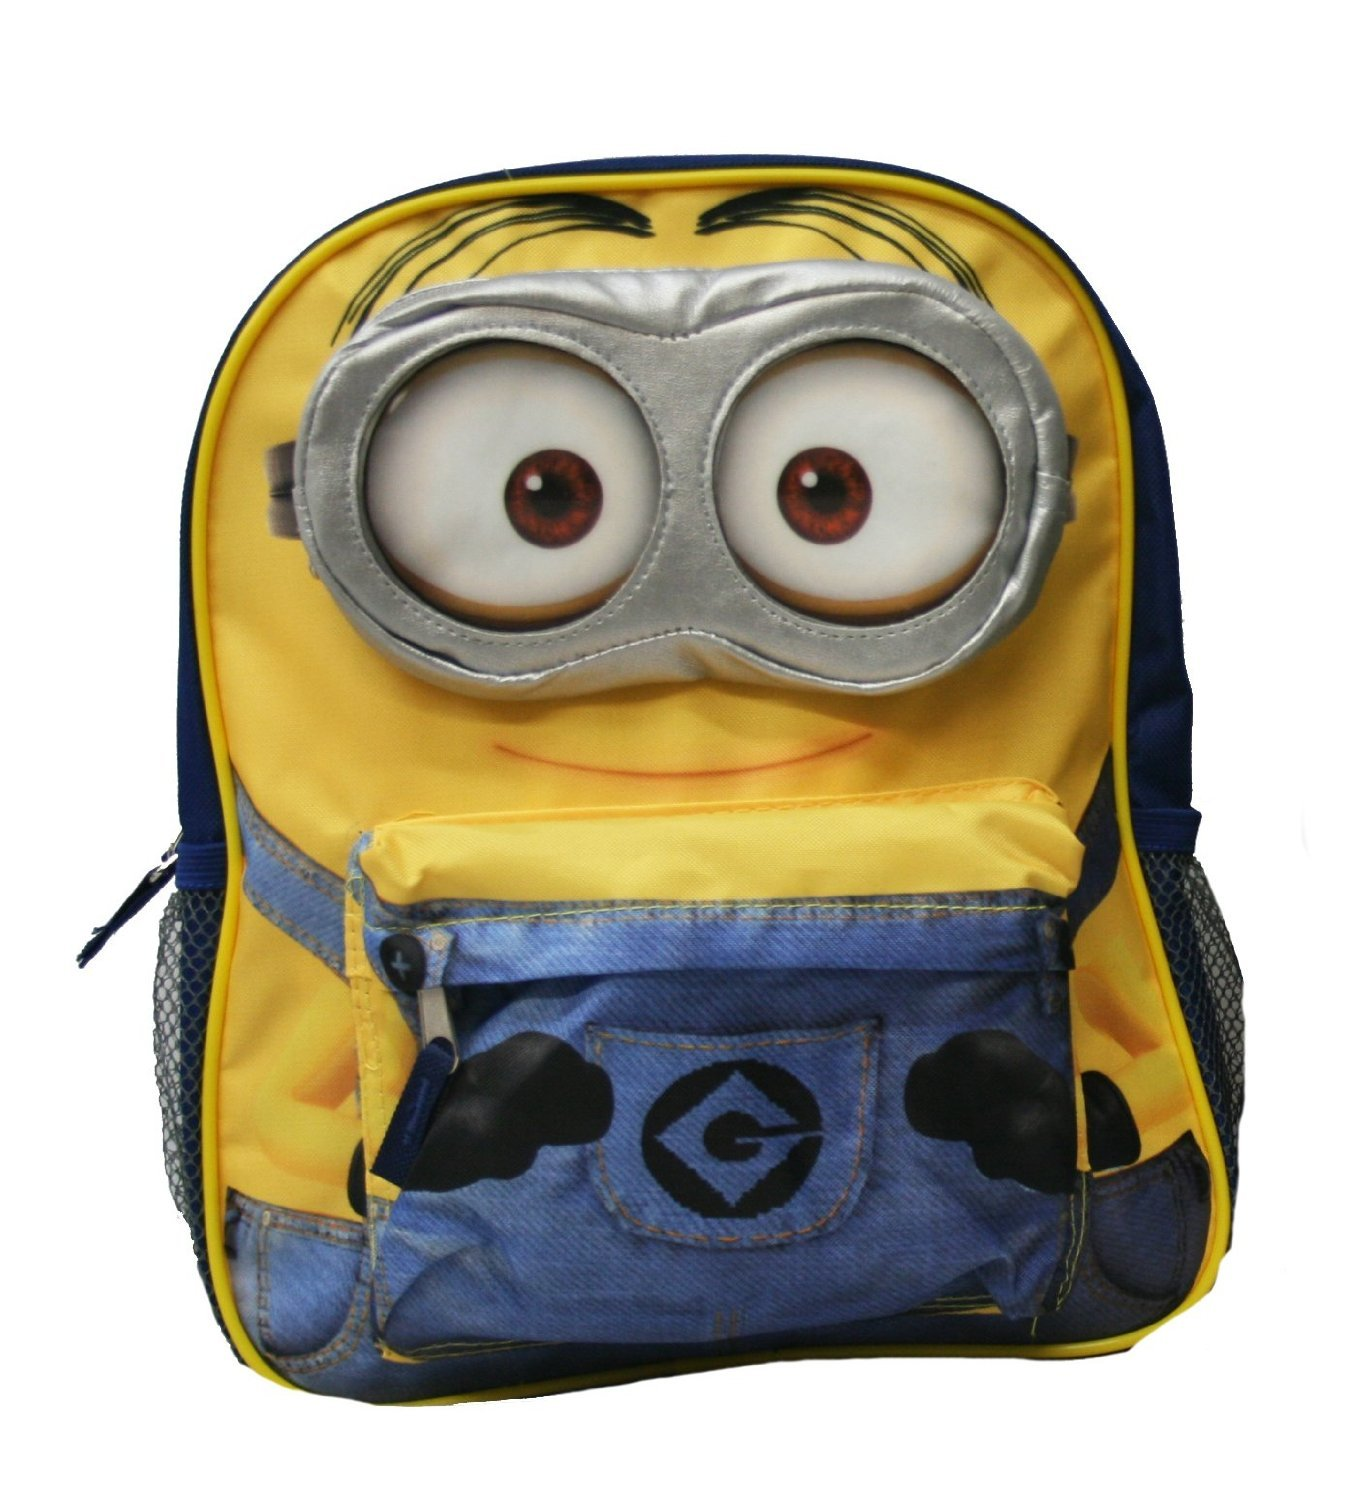 Despicable Me 2 - 12 Minion Backpack [Toy] Accessory Innovations NA